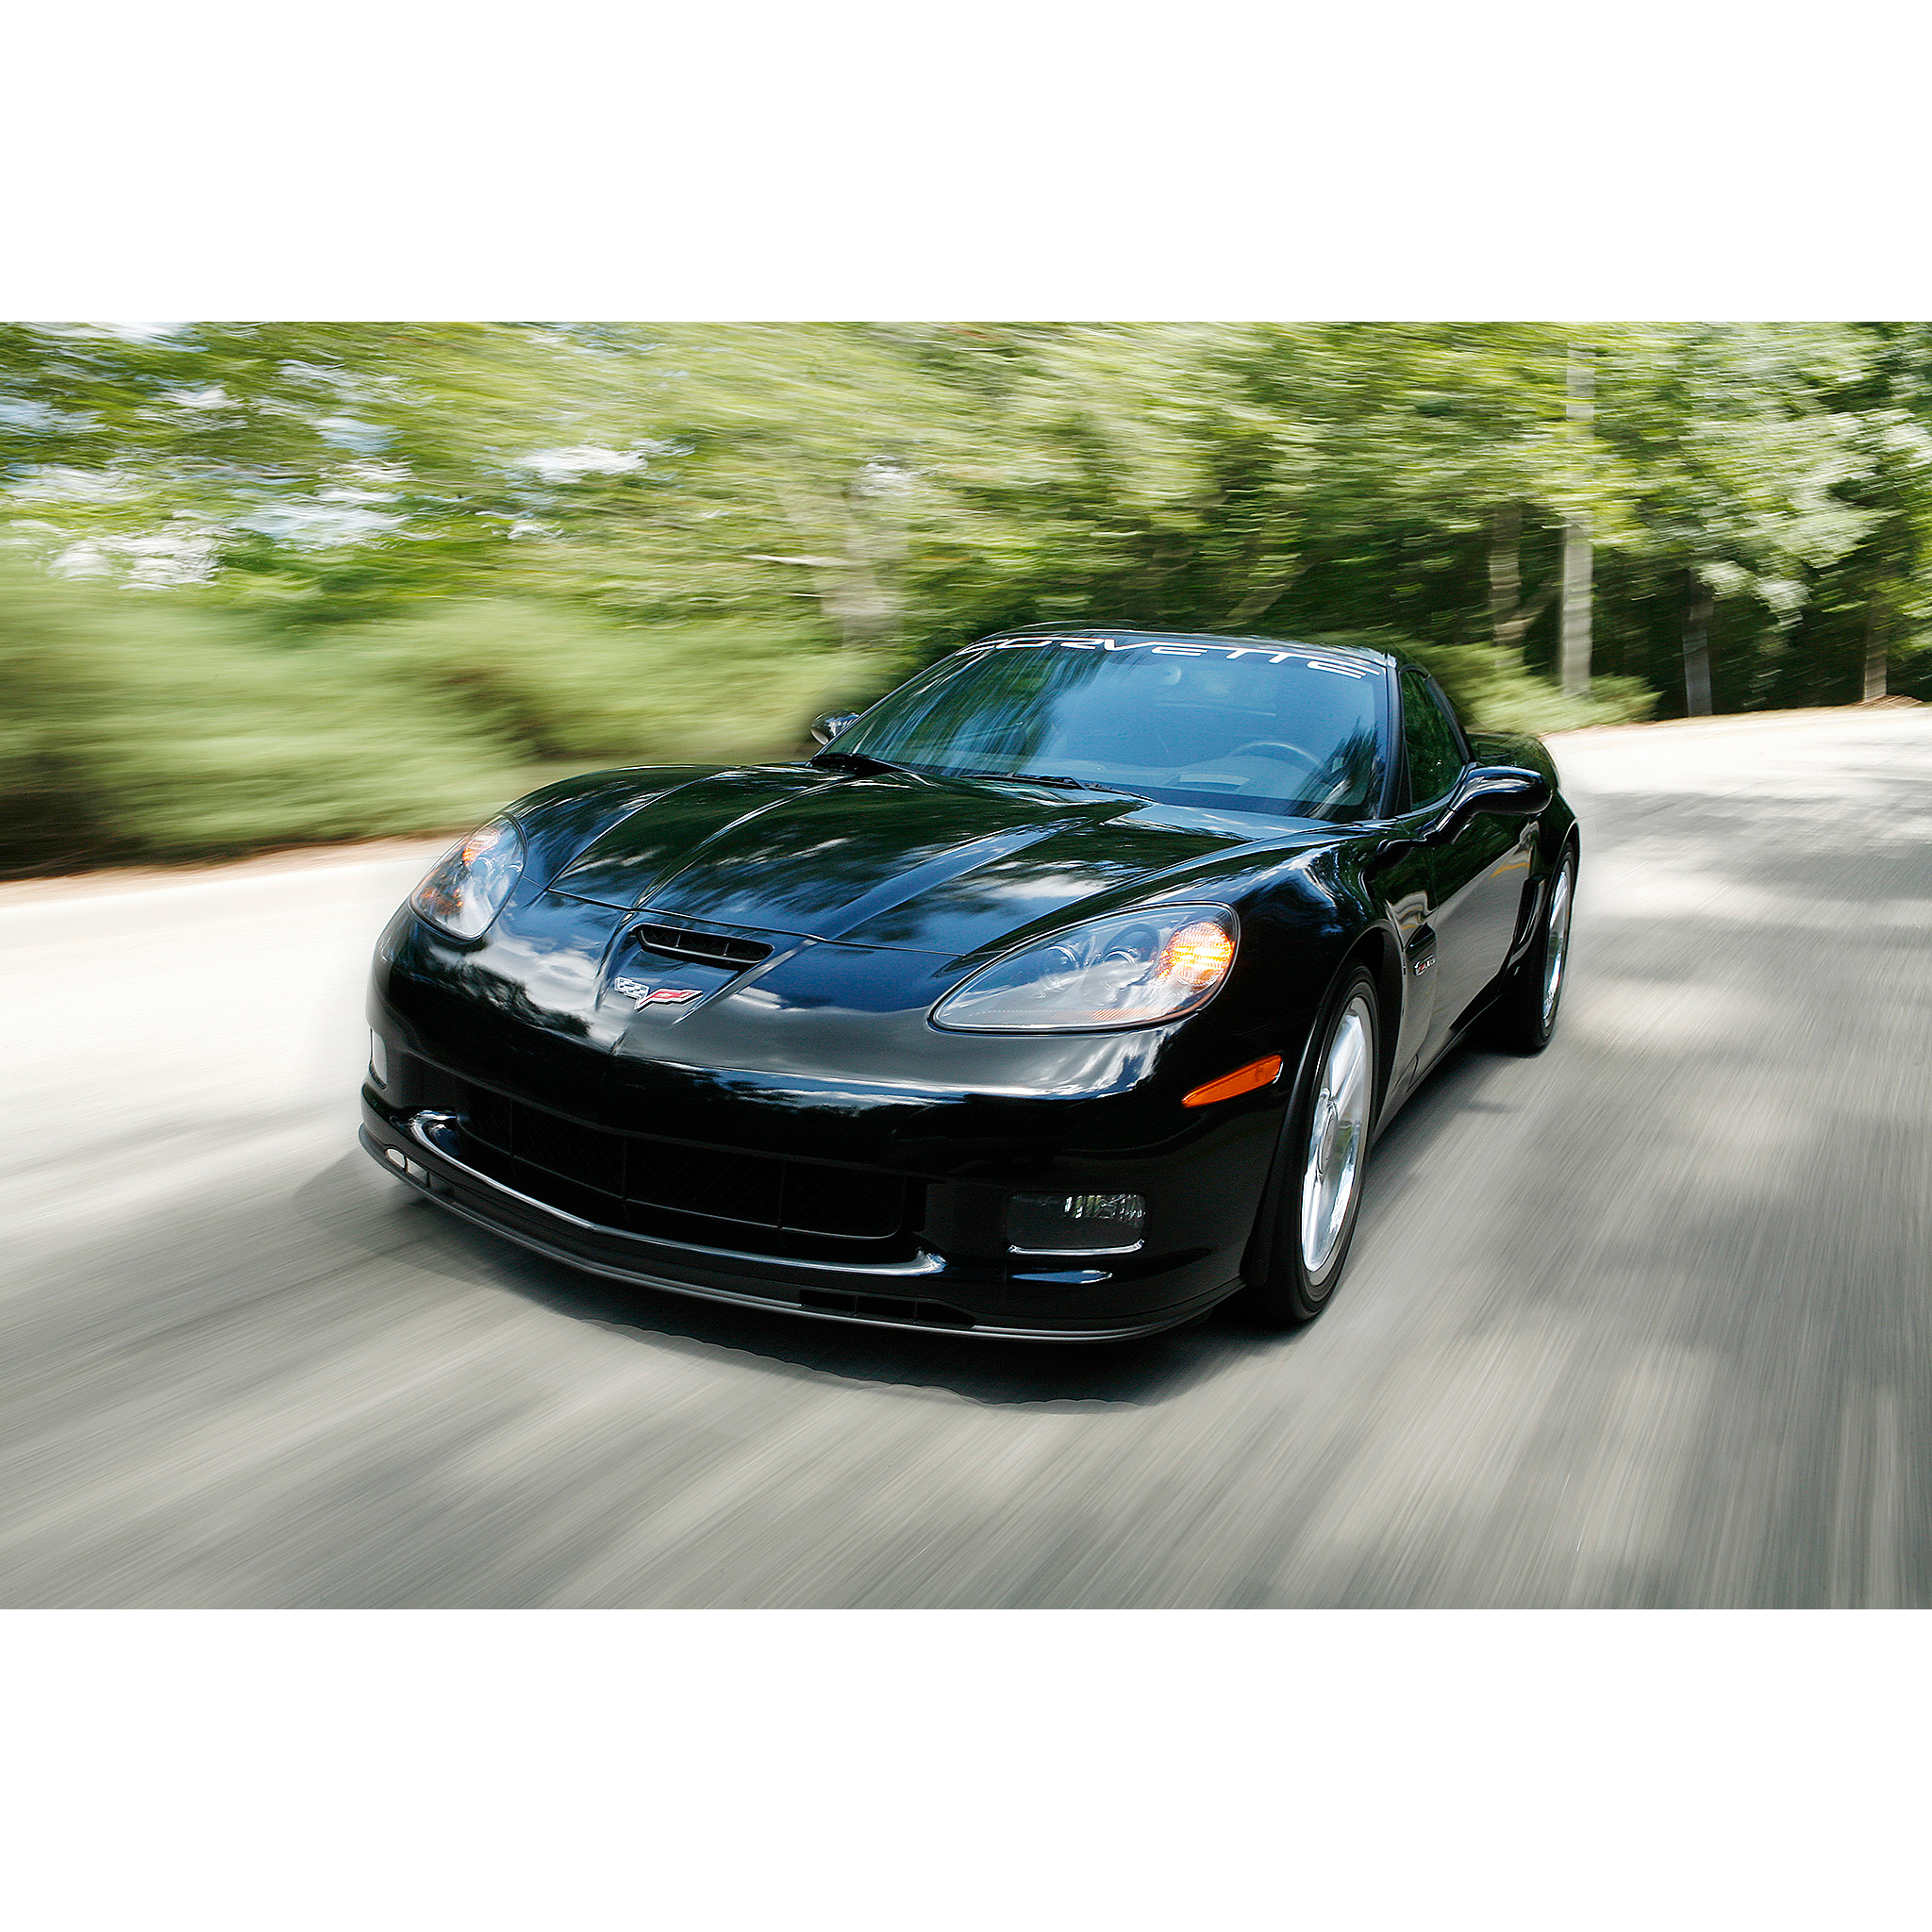 Photo of a Chevrolet Corvette driving down the road